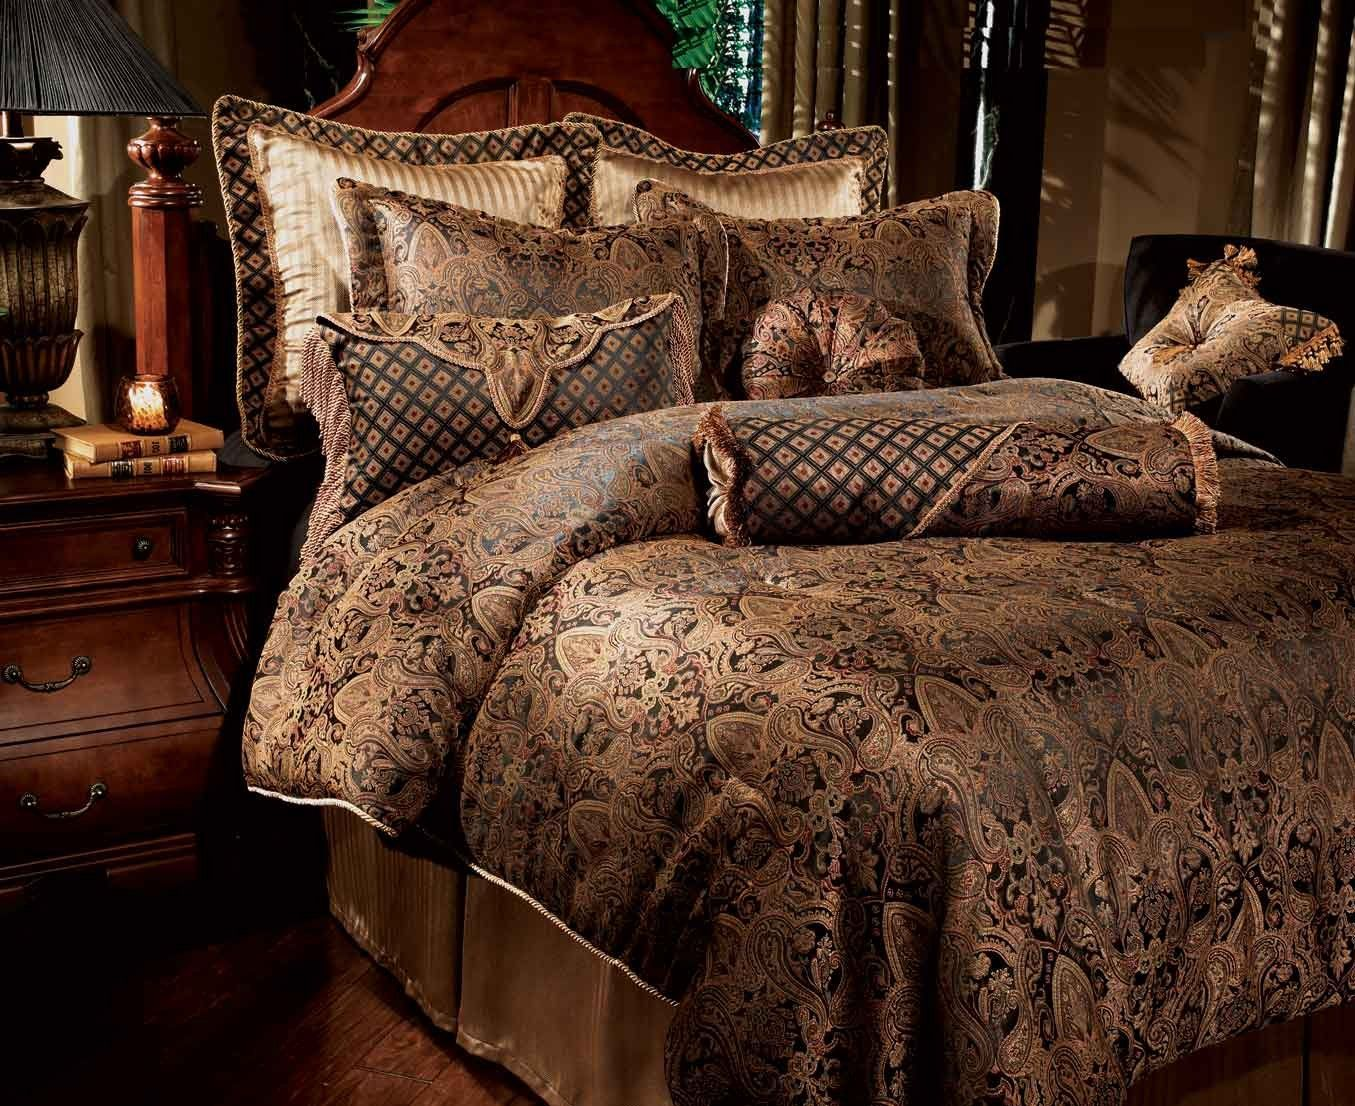 Luxury Designer Comforter Sets Amazing Luxury Bedsheets To Create Luxurious Bedroom Decorating Design Bed Linens Luxury Luxury Bedding Luxury Bedding Sets